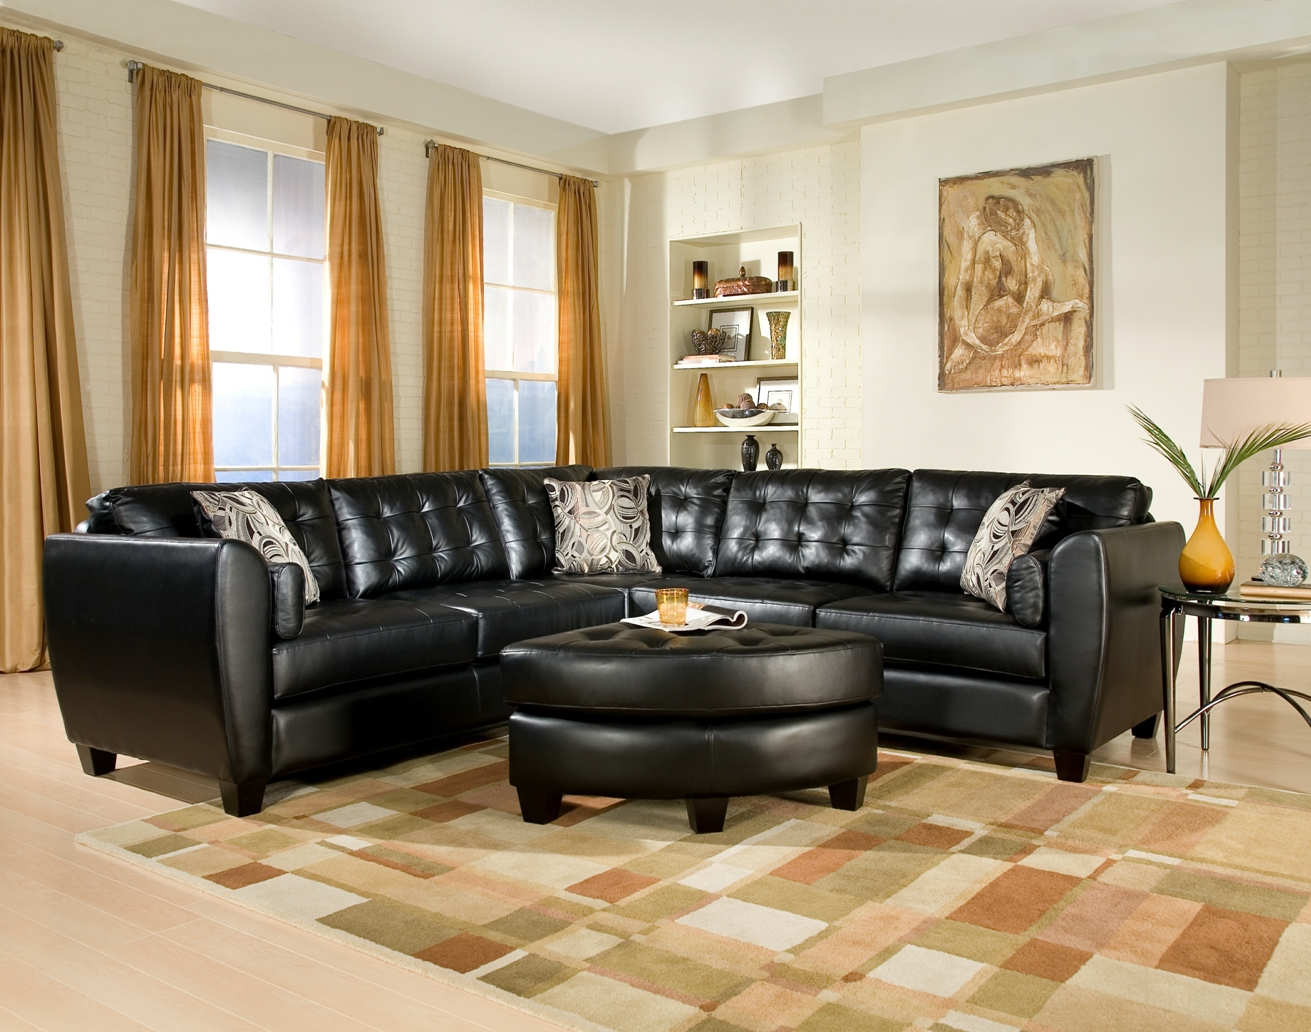 Living Room Ideas Black Living Room Ideas With Sectionals Sofa For Small Living